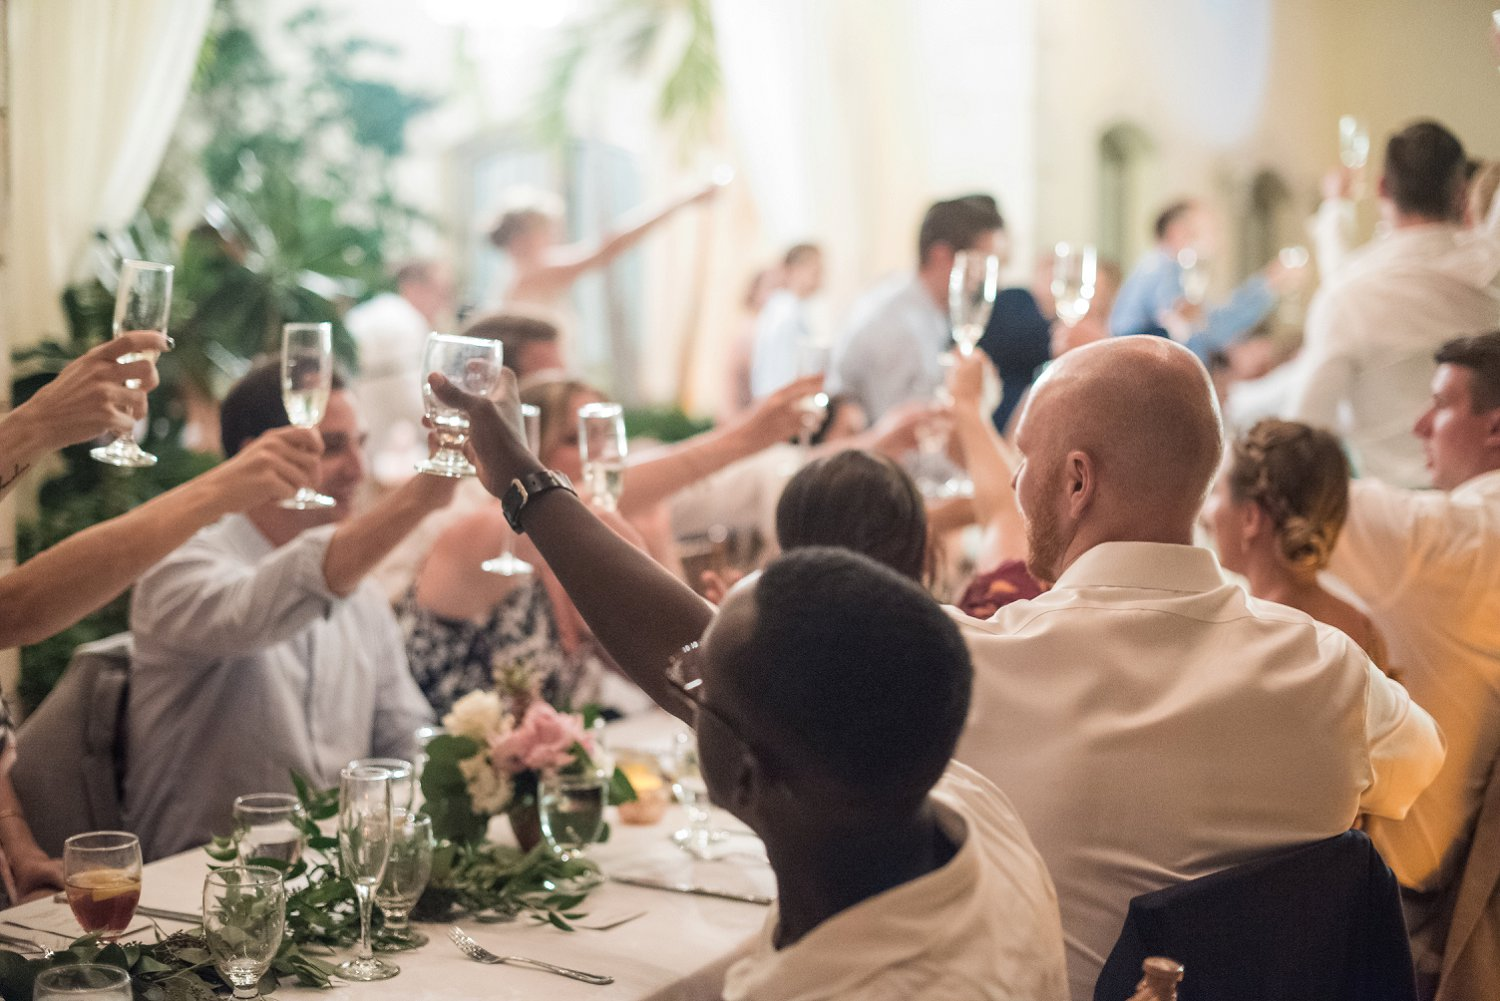 Wedding guests toast the bride and groom at dinner.